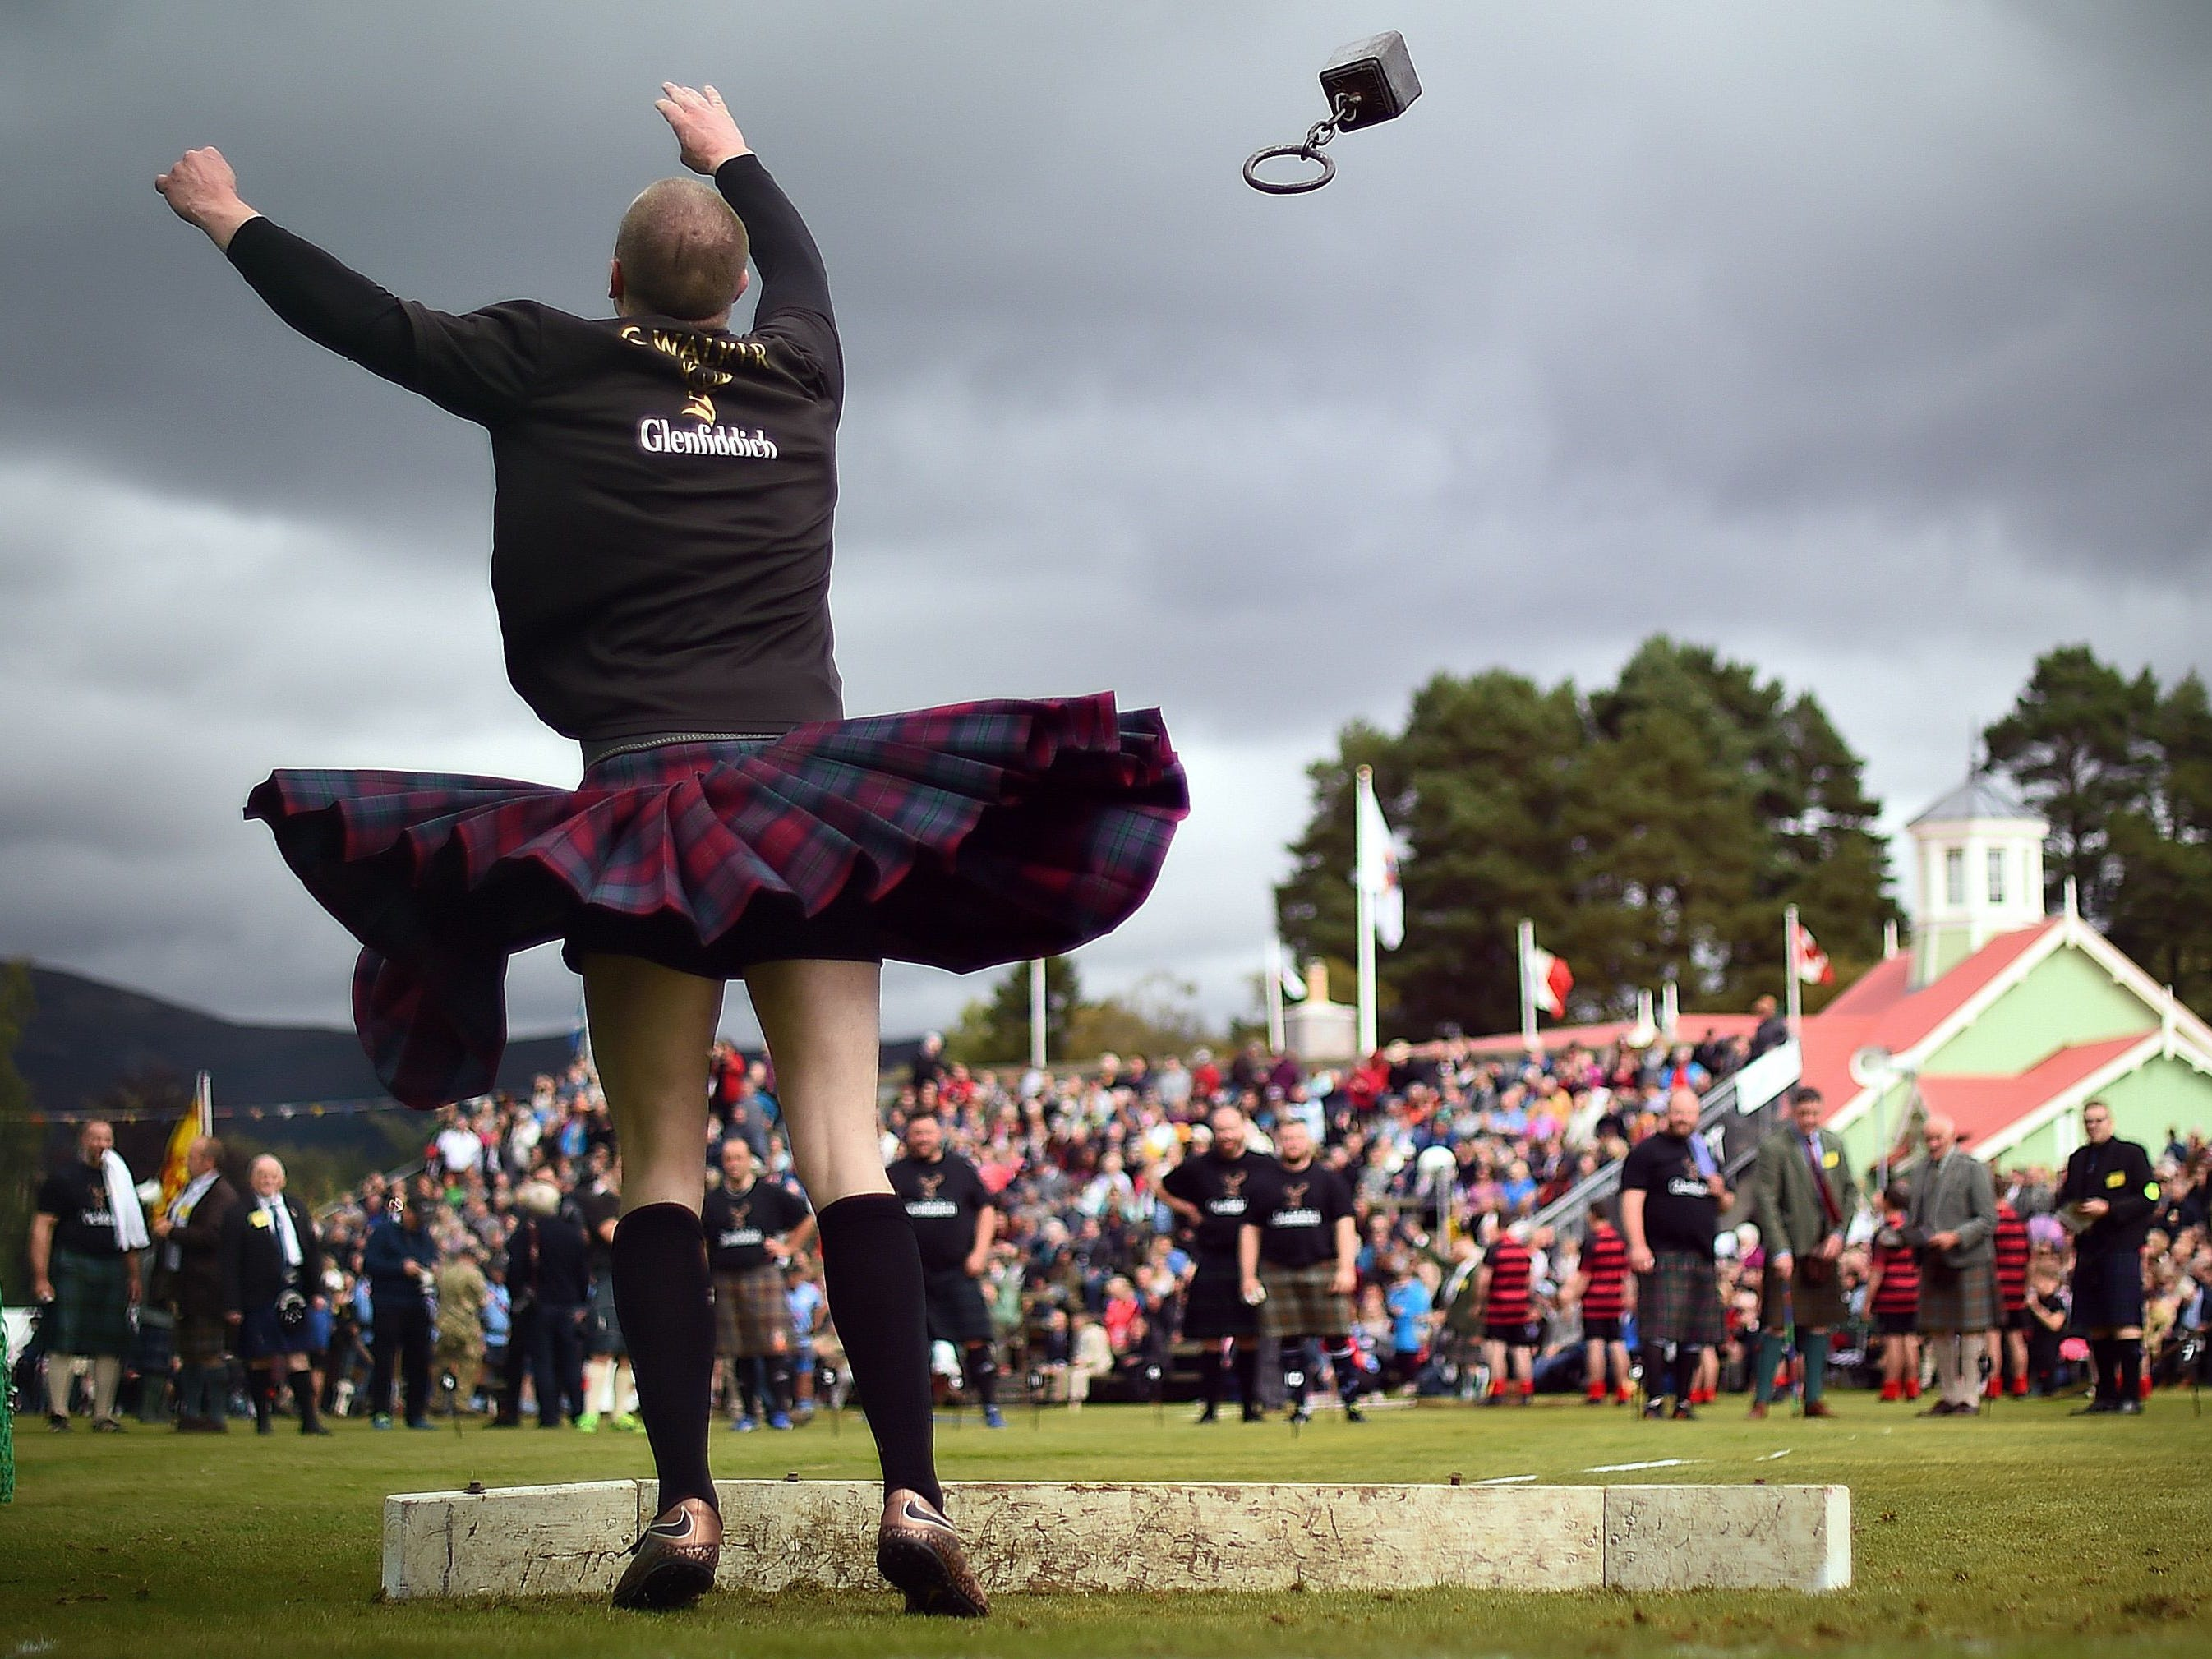 A competitor takes part in the Hammer Throw event at the annual Braemar Gathering in Braemar, central Scotland, on Sept. 1, 2018.